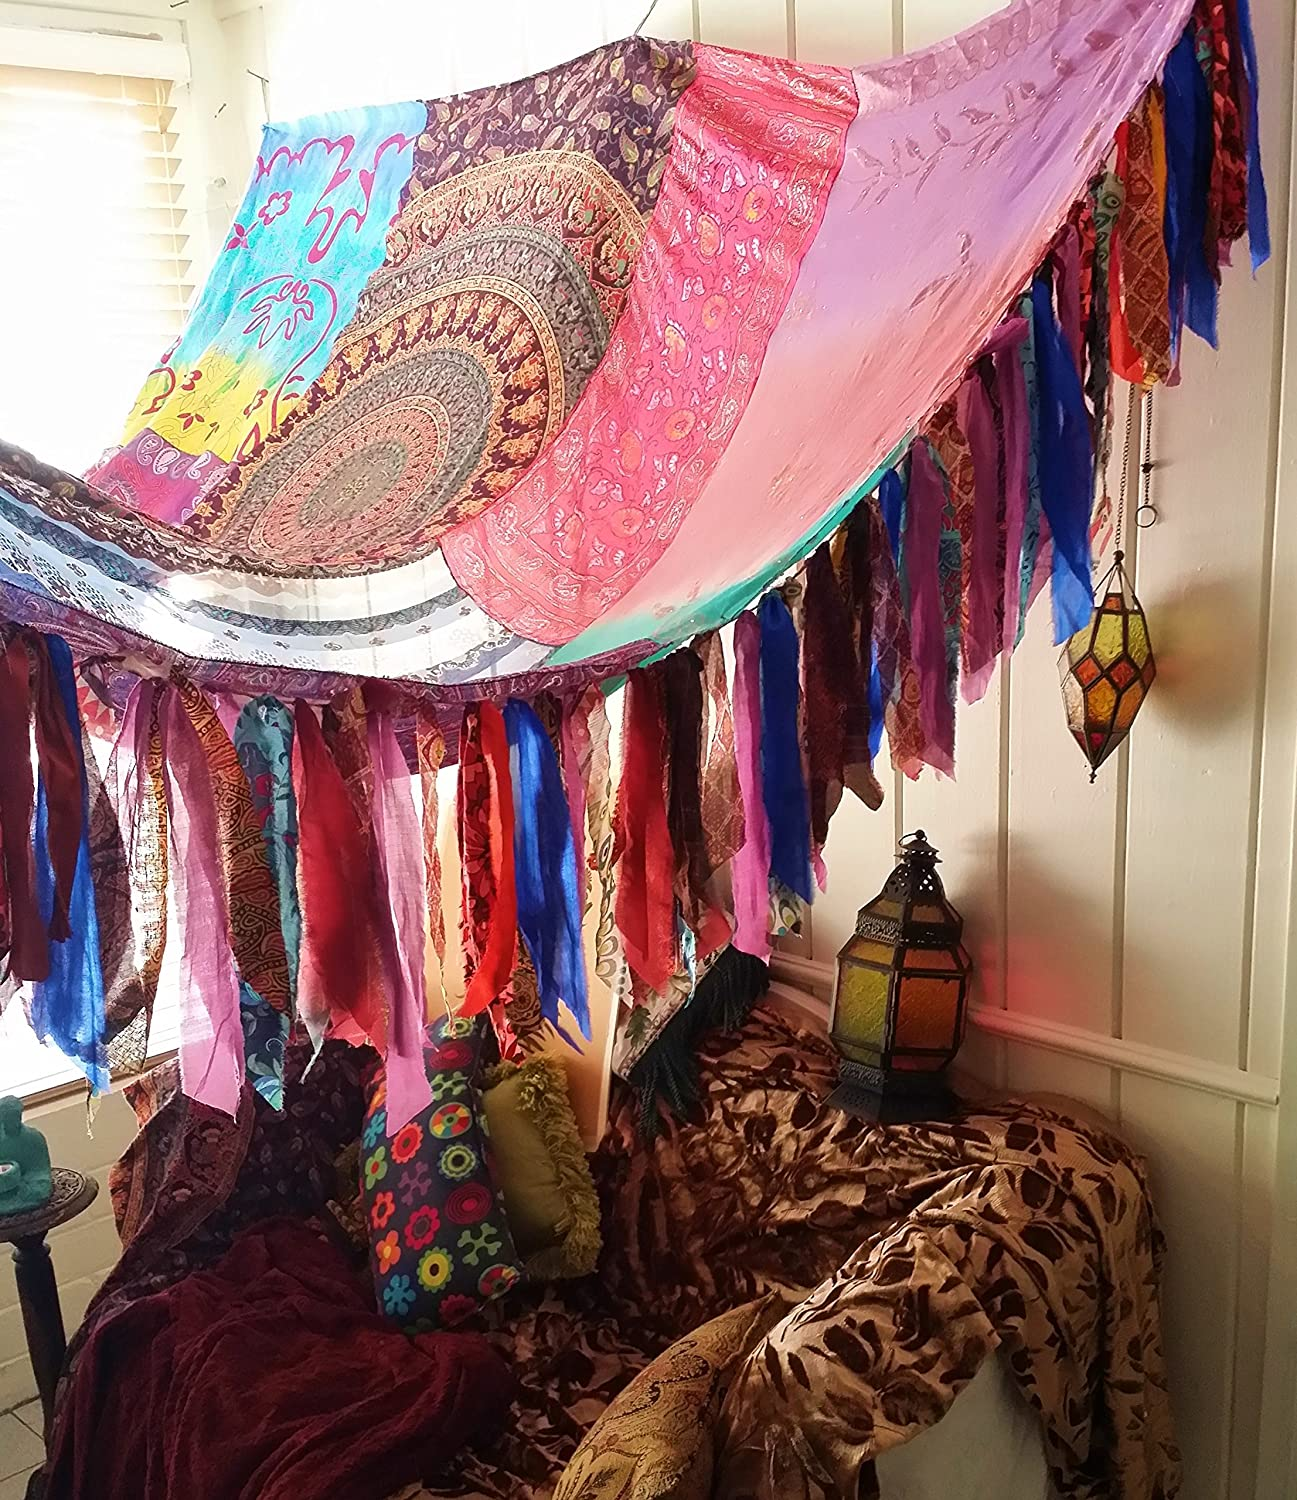 Amazon Com In Stock Ships Same Day You Pay Boho Bed Canopy Hippie Hippiewild Bohemian Hippy & In Stock Ships Same Day You Pay Boho Bed Canopy Hippie